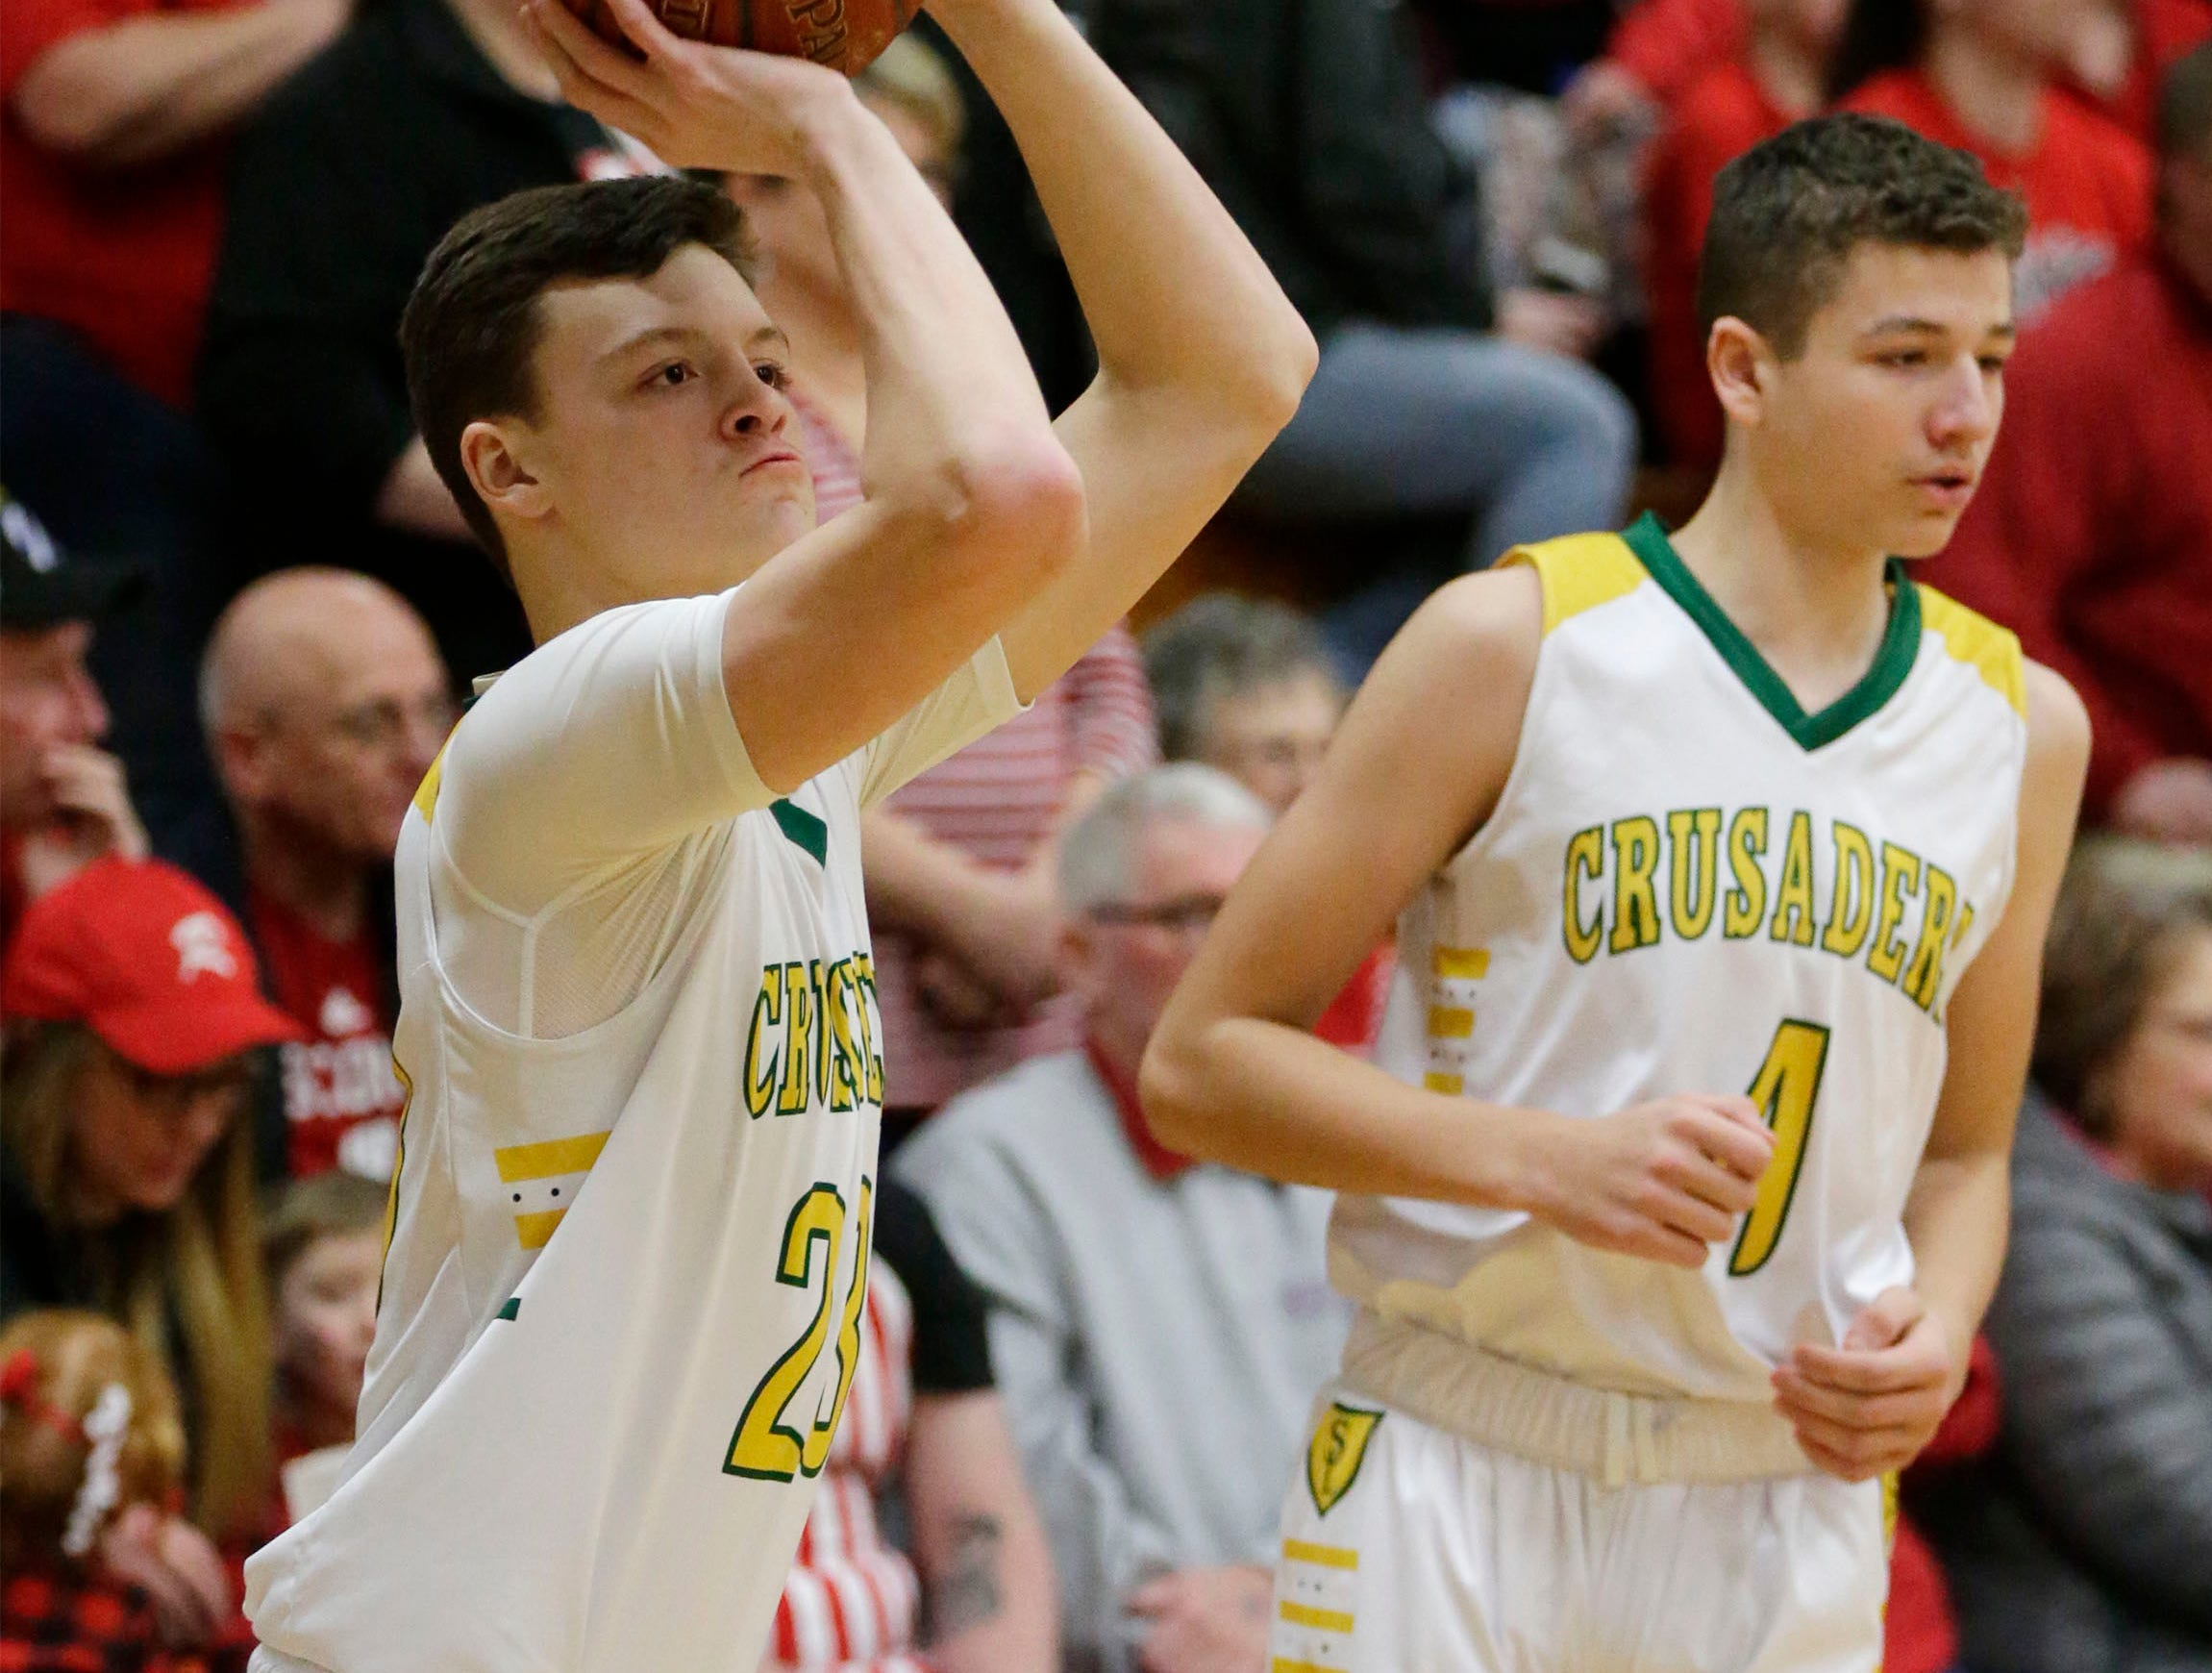 Sheboygan Lutheran's Jacob Ognacevic (23) aims a practice shot before the game with Rio, Saturday, March 9, 2019, in West Bend, Wis.